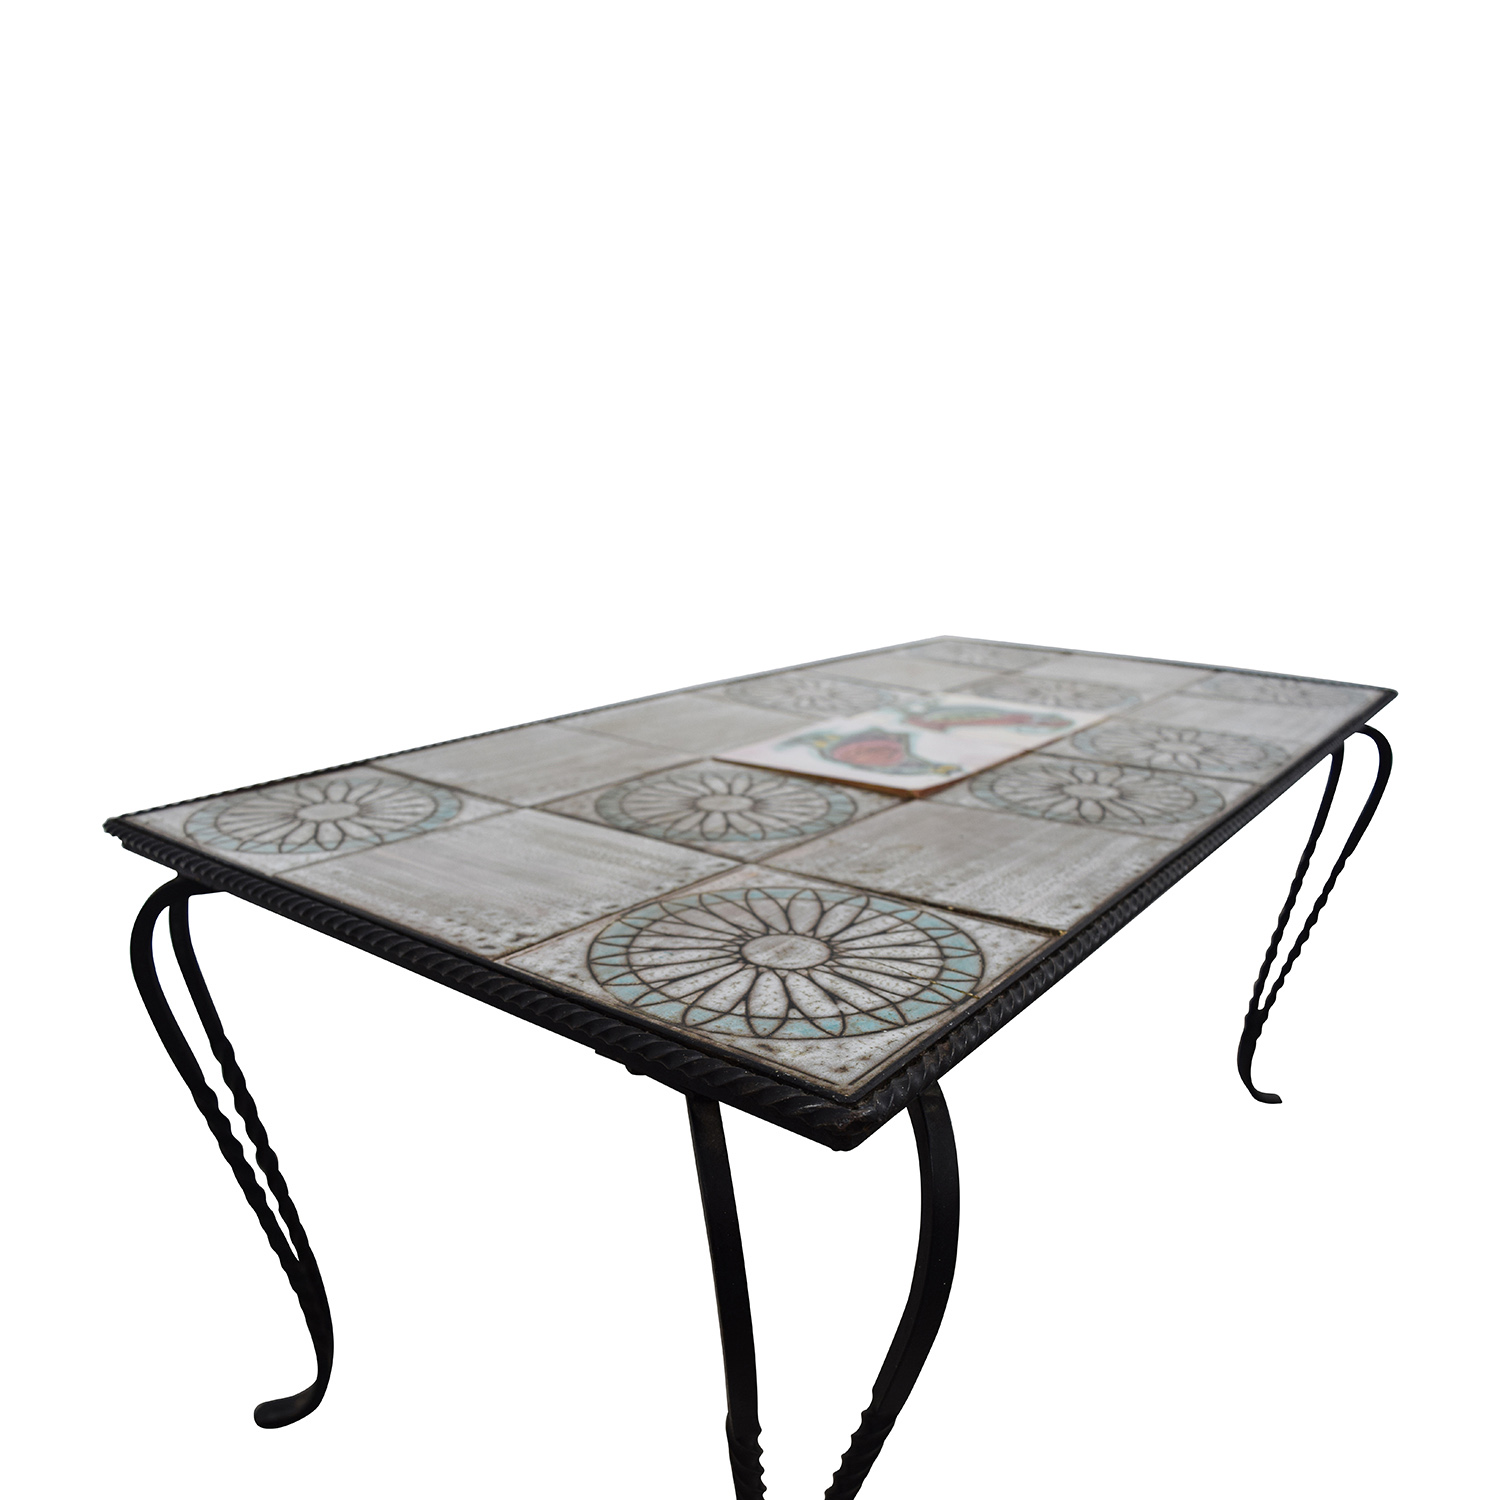 79 off wrought iron tile table tables